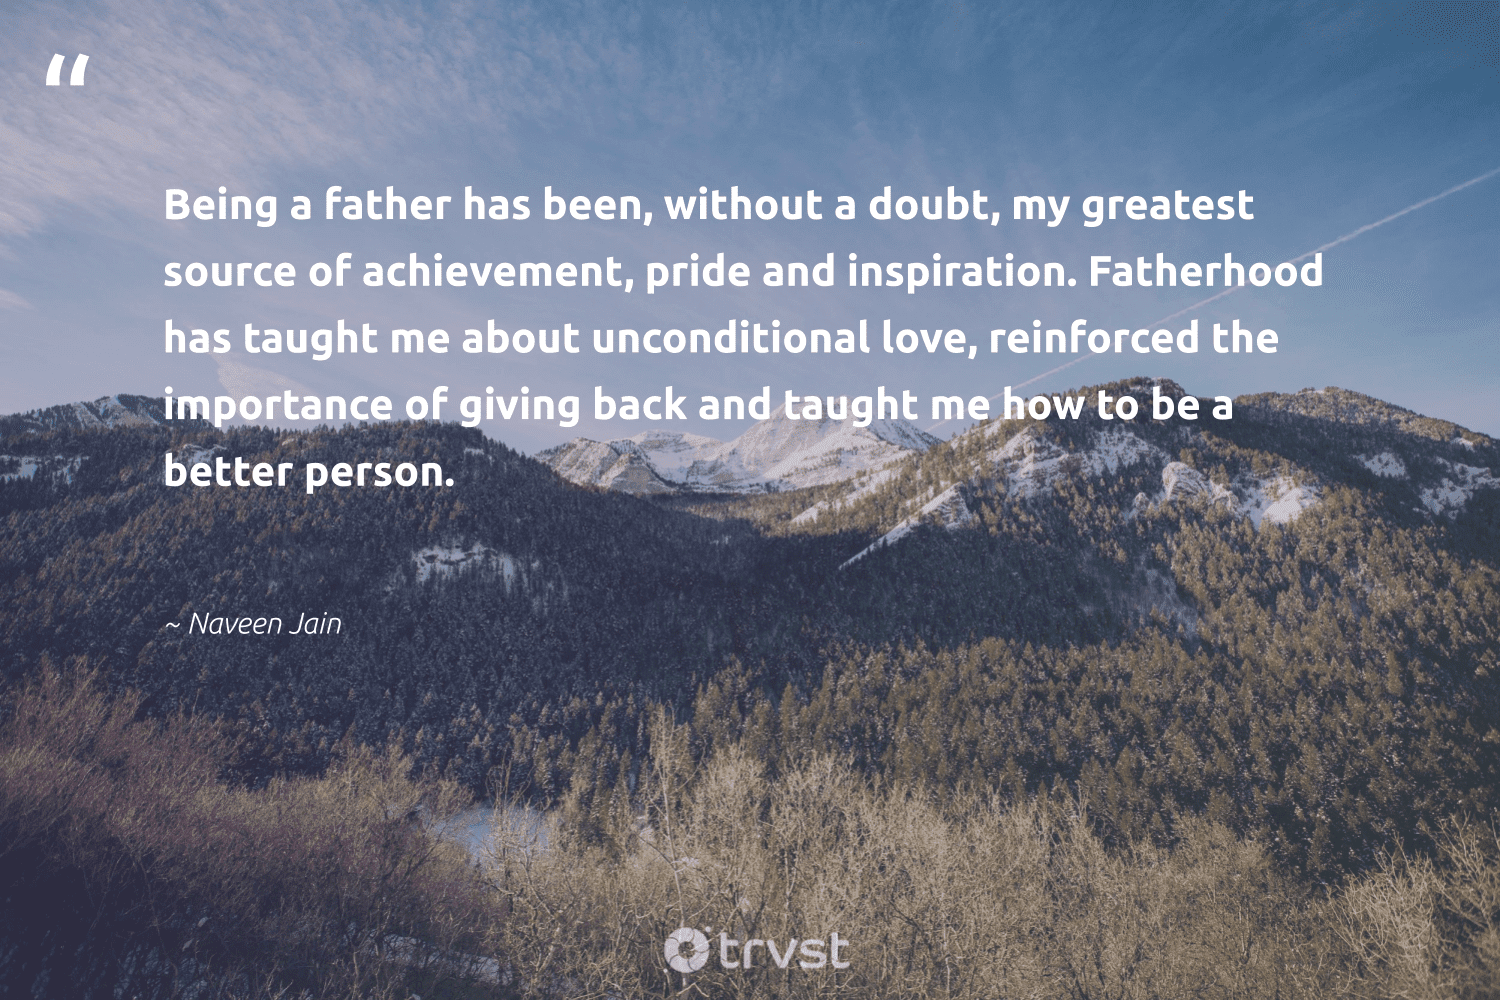 """""""Being a father has been, without a doubt, my greatest source of achievement, pride and inspiration. Fatherhood has taught me about unconditional love, reinforced the importance of giving back and taught me how to be a better person.""""  - Naveen Jain #trvst #quotes #givingback #love #pride #socialgood #giveback #togetherwecan #changemakers #beinspired #dogood #itscooltobekind"""